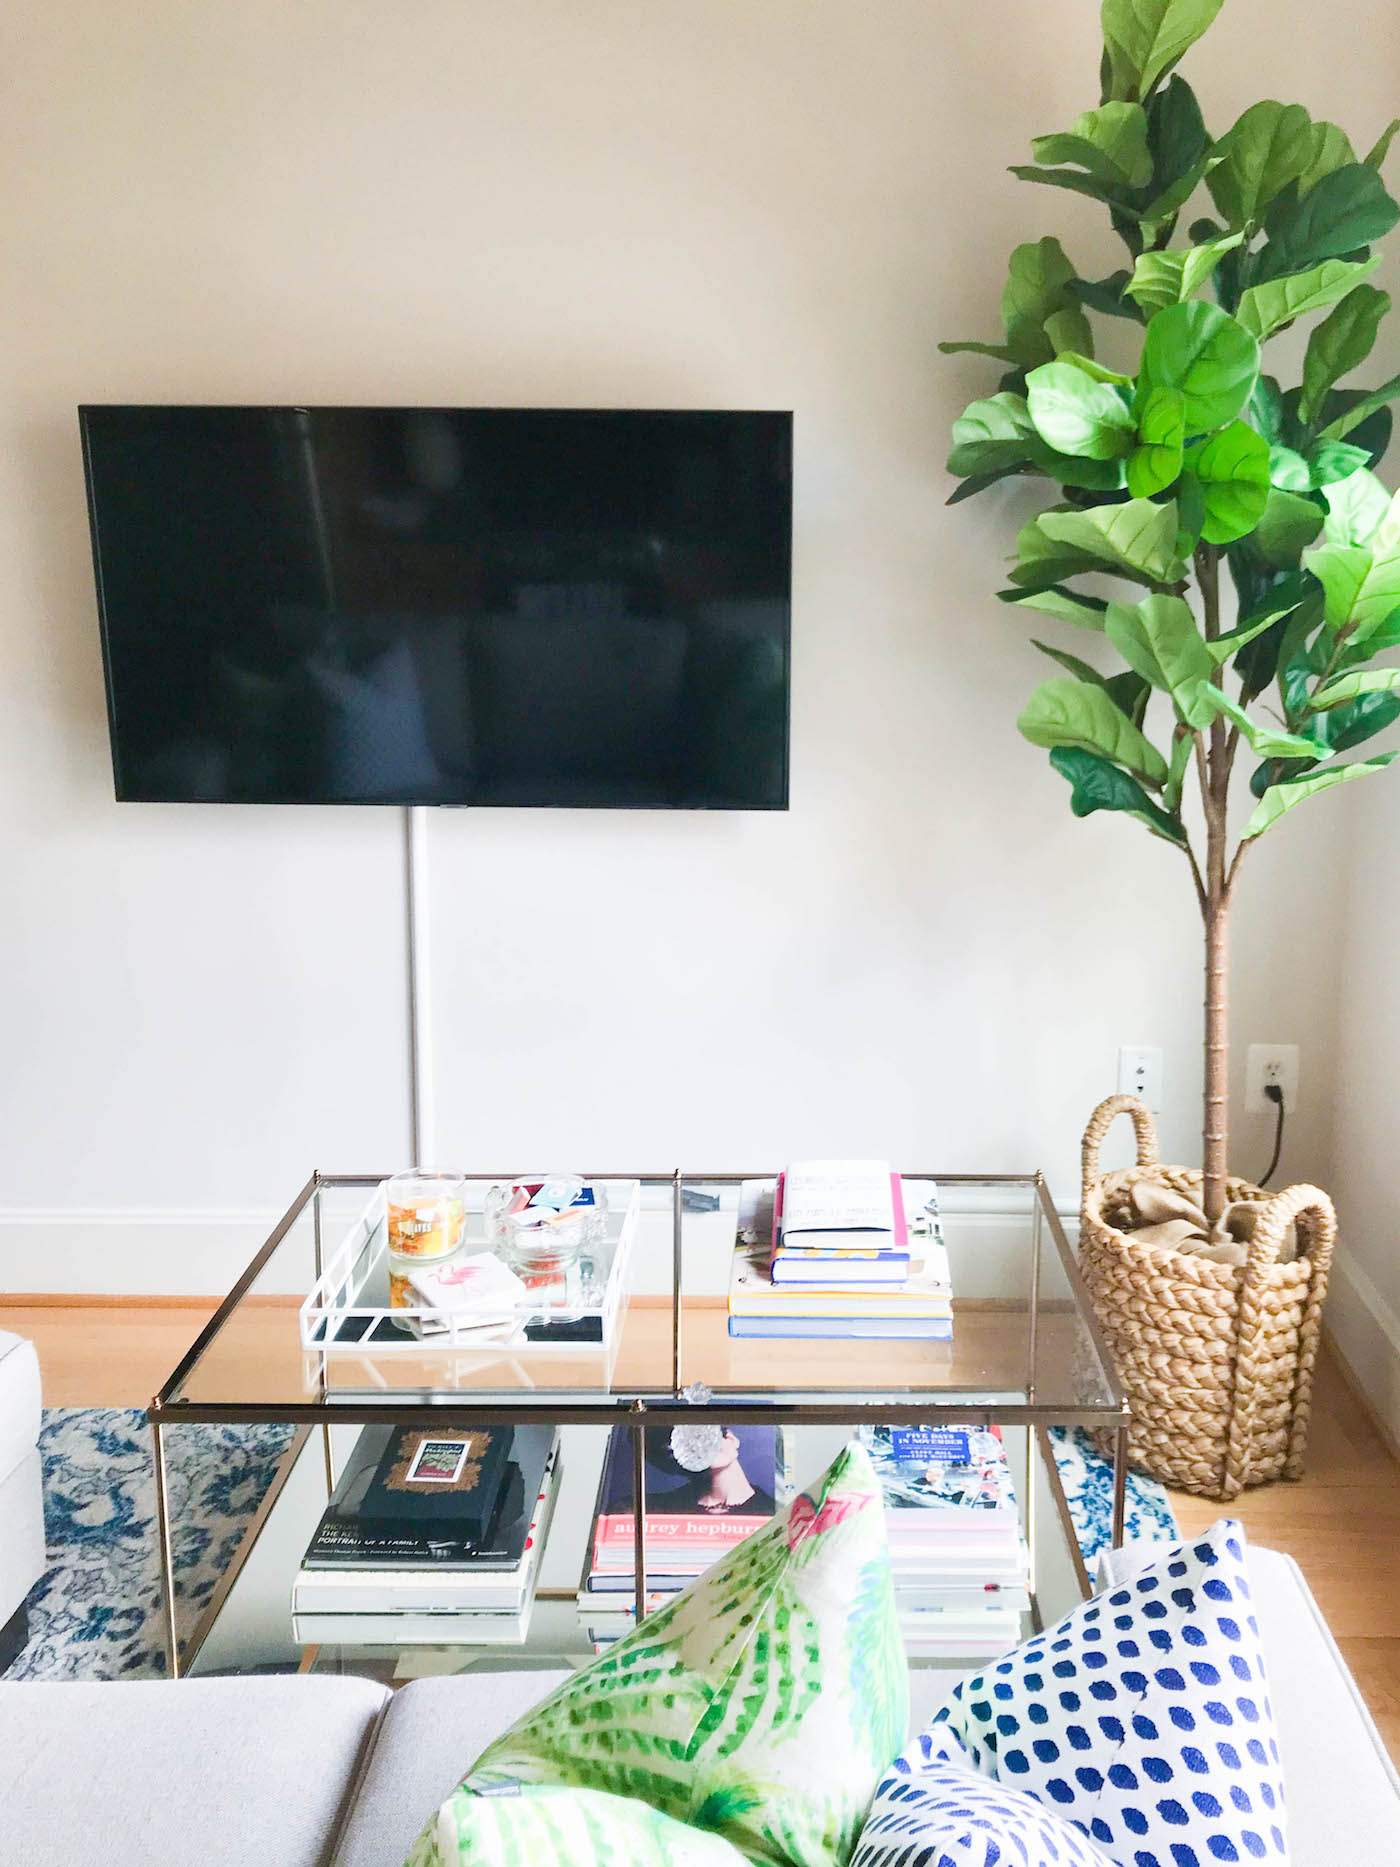 Home Decor Tv Mounting Tips For A Small Apartment